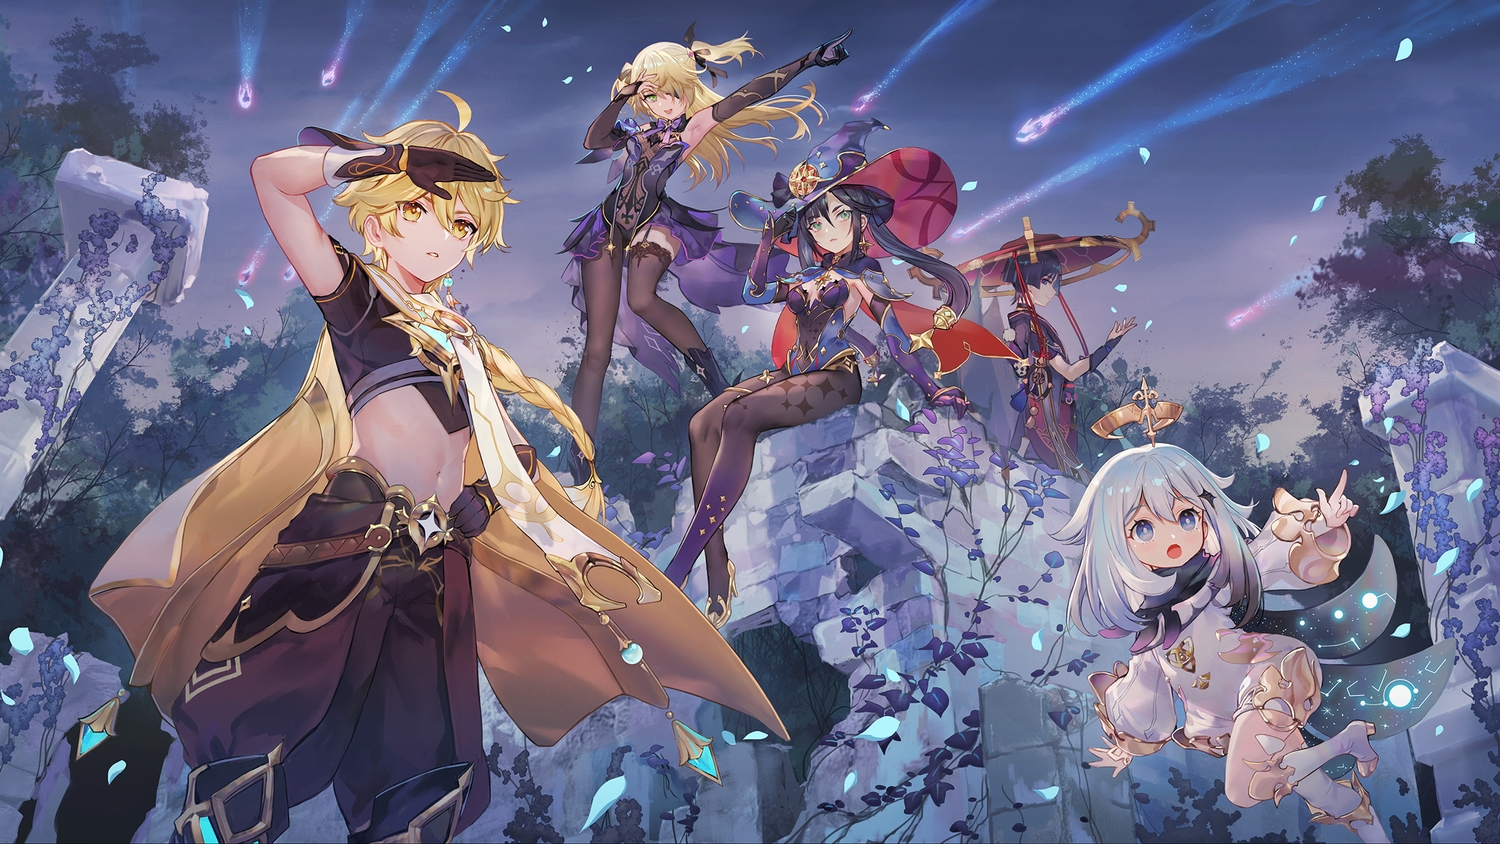 aether_(genshin_impact) black_eyes black_hair blonde_hair blue_eyes bow criin_(659503) dress elbow_gloves fischl_(genshin_impact) genshin_impact gloves green_eyes group halo hat loli long_hair male mona_(genshin_impact) necklace night paimon_(genshin_impact) pantyhose petals ruins scaramouche_(genshin_impact) short_hair sky stockings tree twintails white_hair yellow_eyes